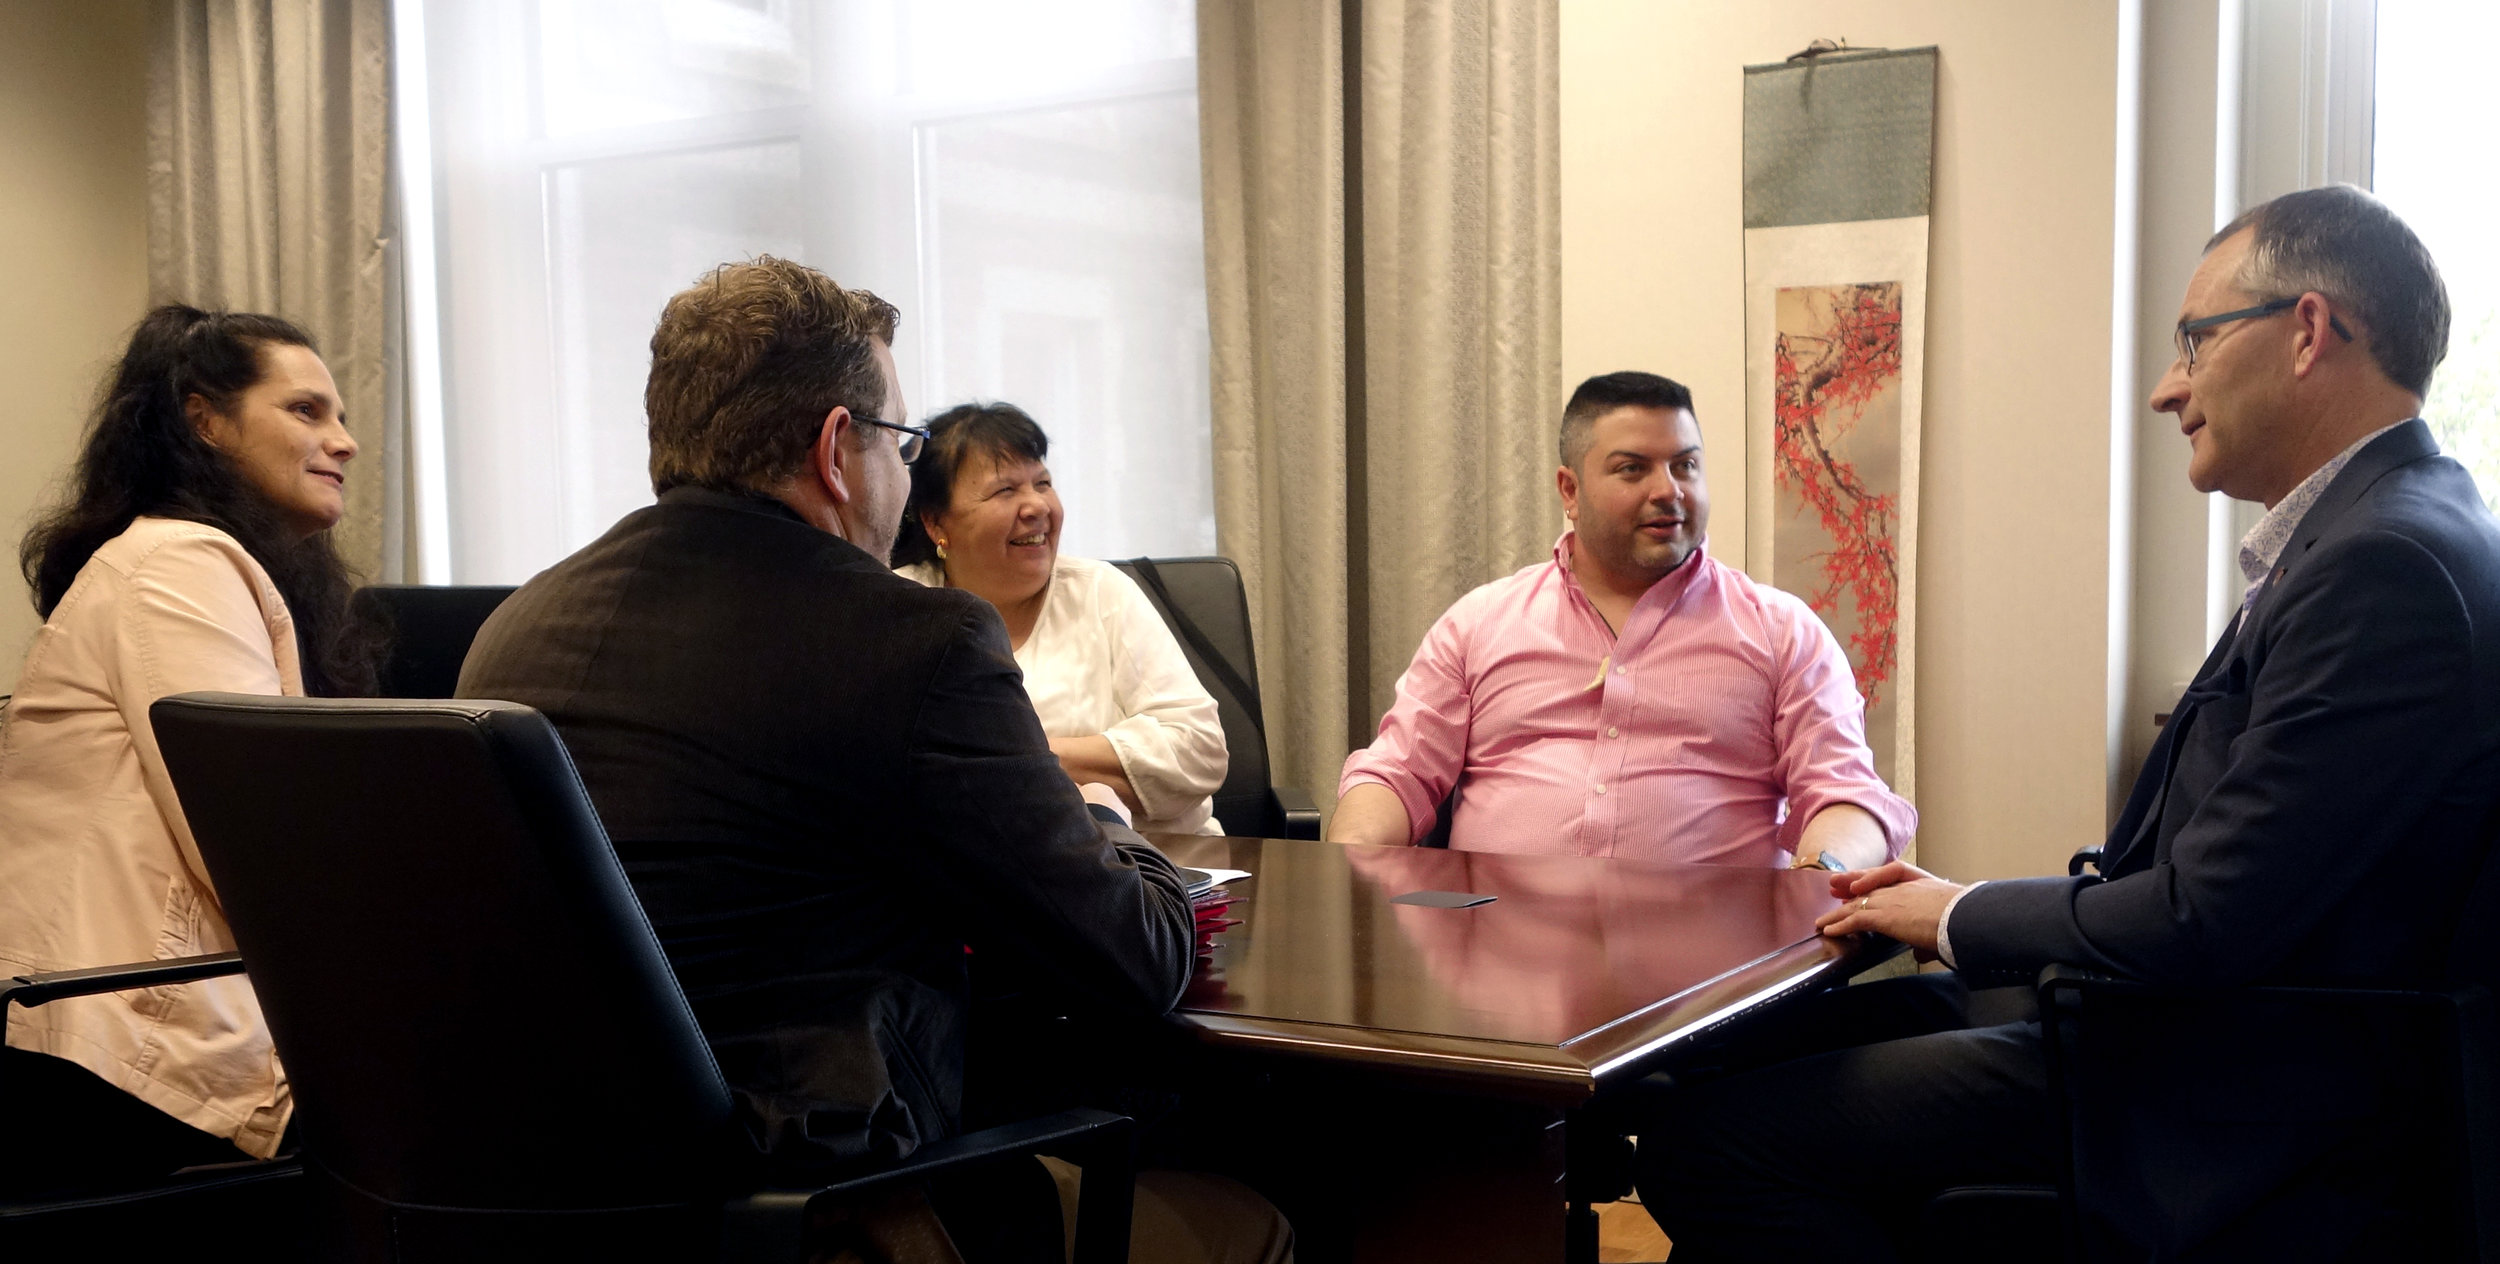 Pictured l-r: Pam Glode-Desrochers, Executive Director of the Mi'kmaw Native Friendship Centre; Tom Brophy, Senior Director, Student Affairs & Services; Elder Debbie Eisan; Indigenous Advisor Raymond Sewell; and President Summerby-Murray chat before signing the new MOU.